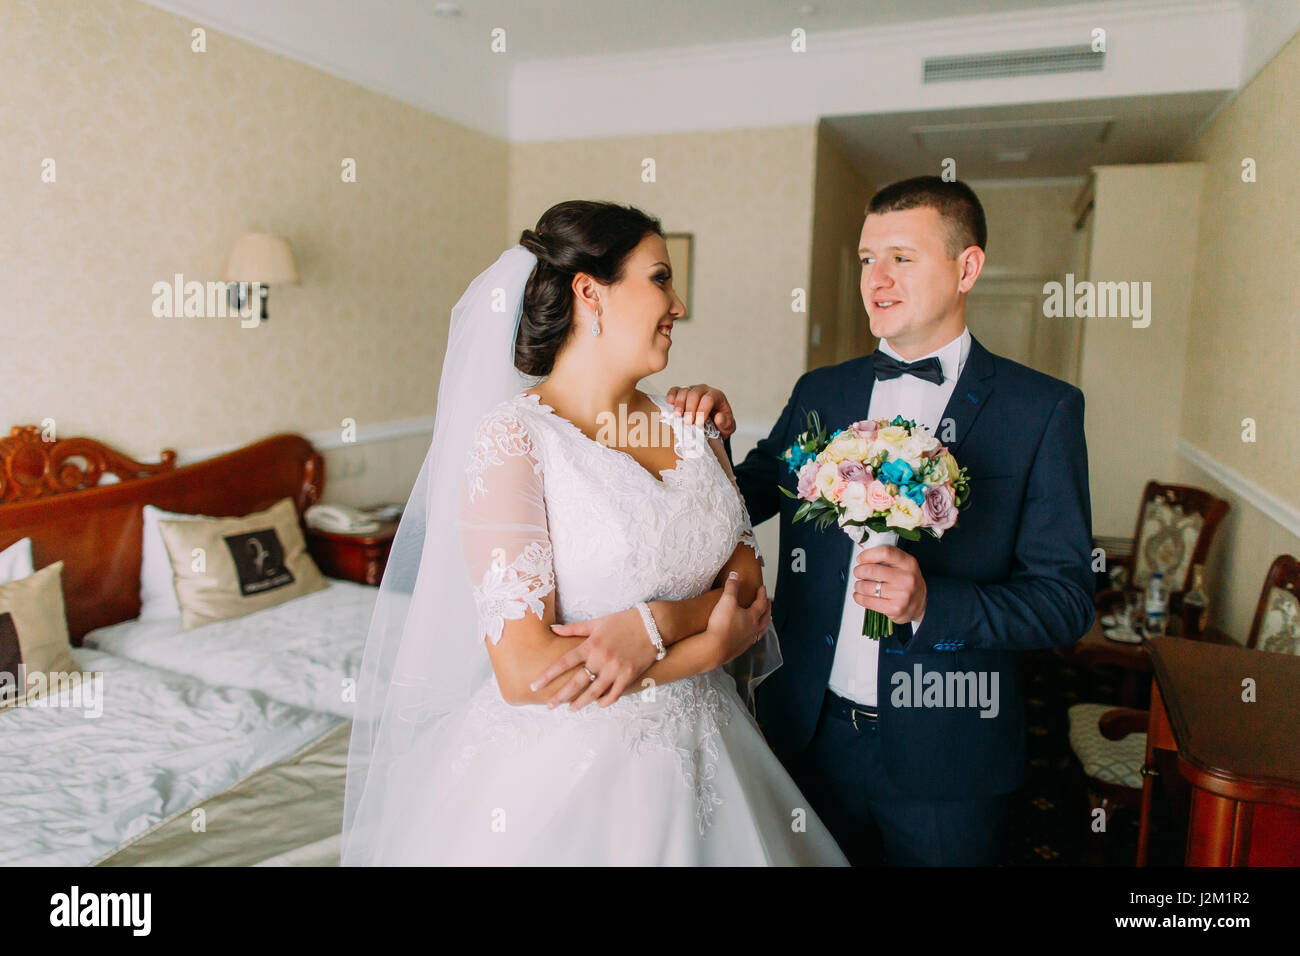 Newlyweds Posing In Hotel Room After Wedding Ceremony Honeymoon Concept